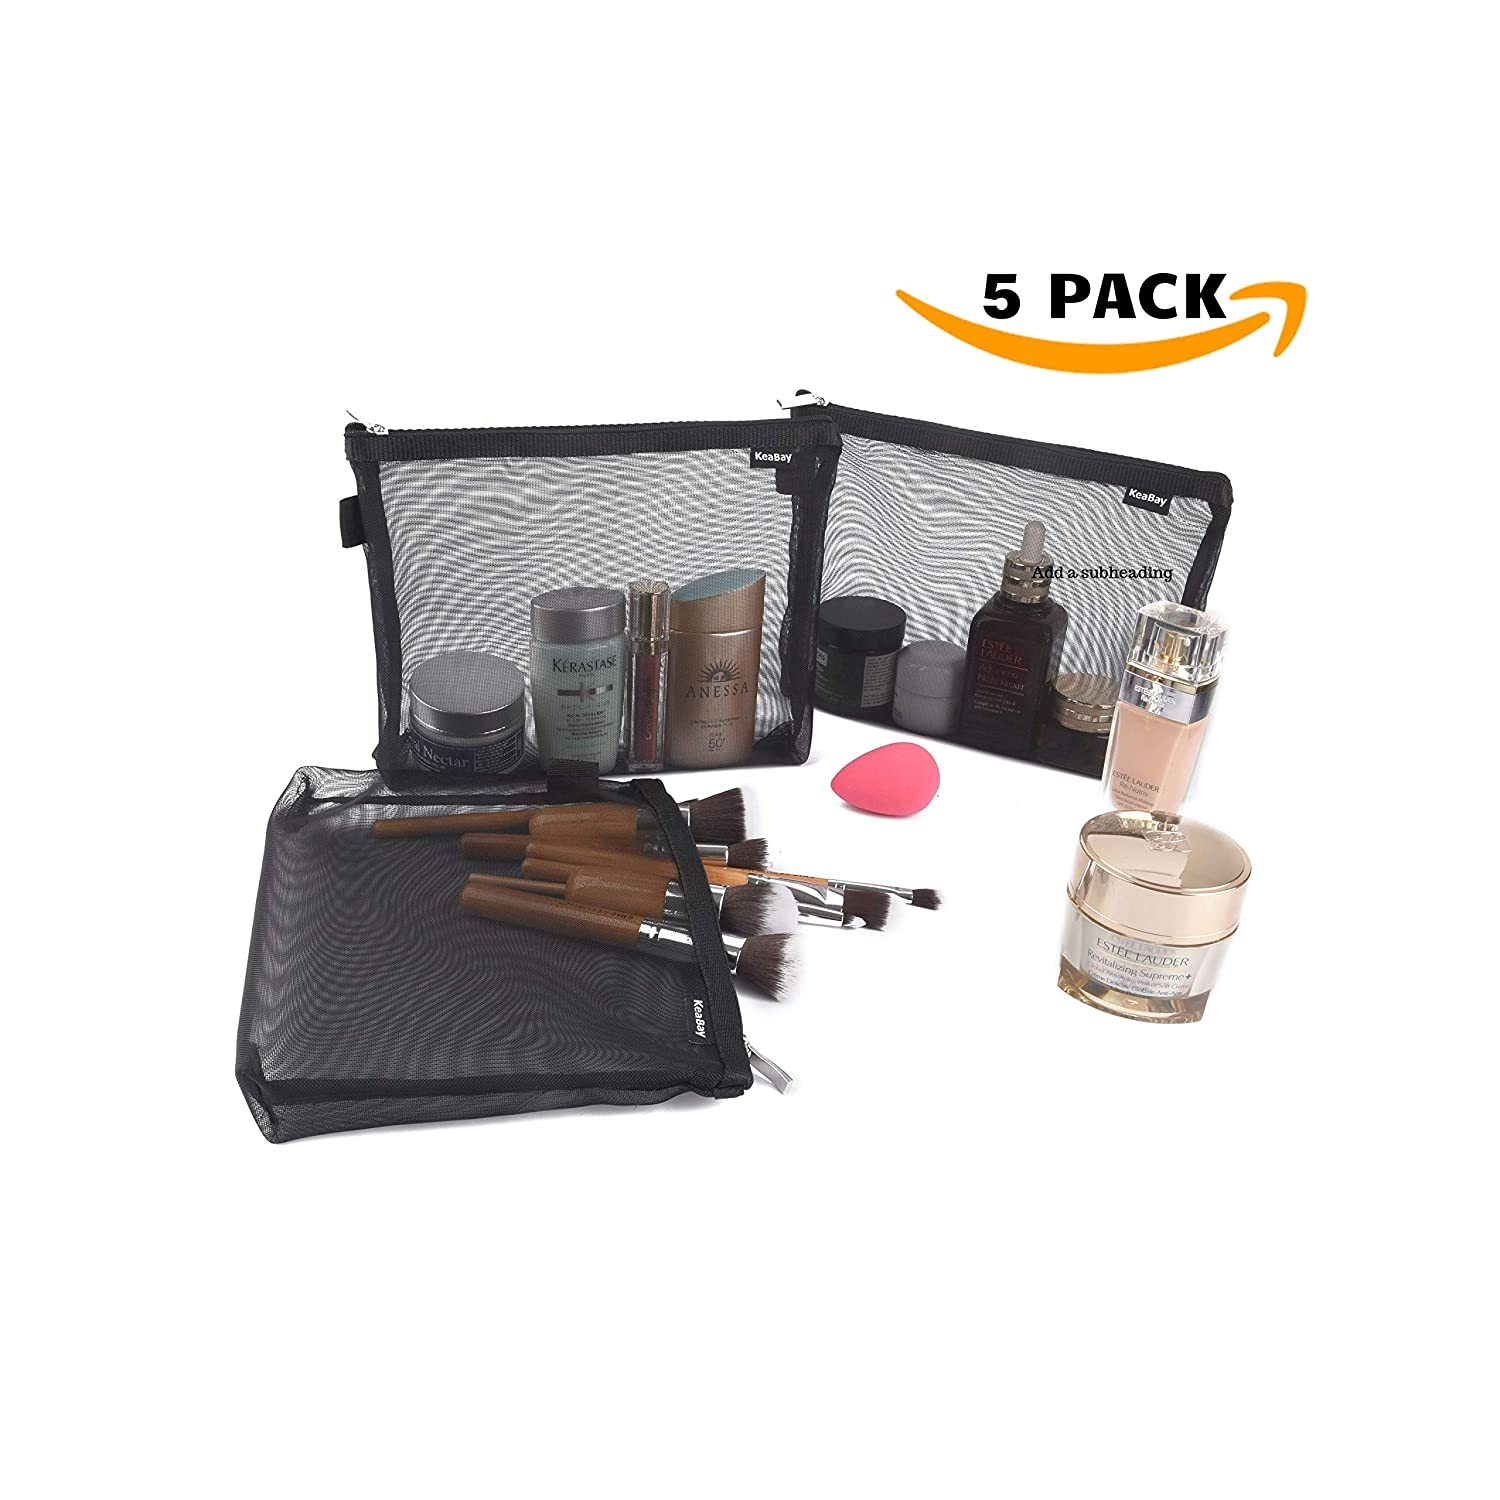 Mesh Makeup Bags with Zipper Cosmetic Organizer Makeup Pouch Black Mesh Bags with Zippers Small Pouch with Zipper Small Travel Accessories Bag Pencil Pouch Small makeup travel bag Travel Pouch 5 Bags